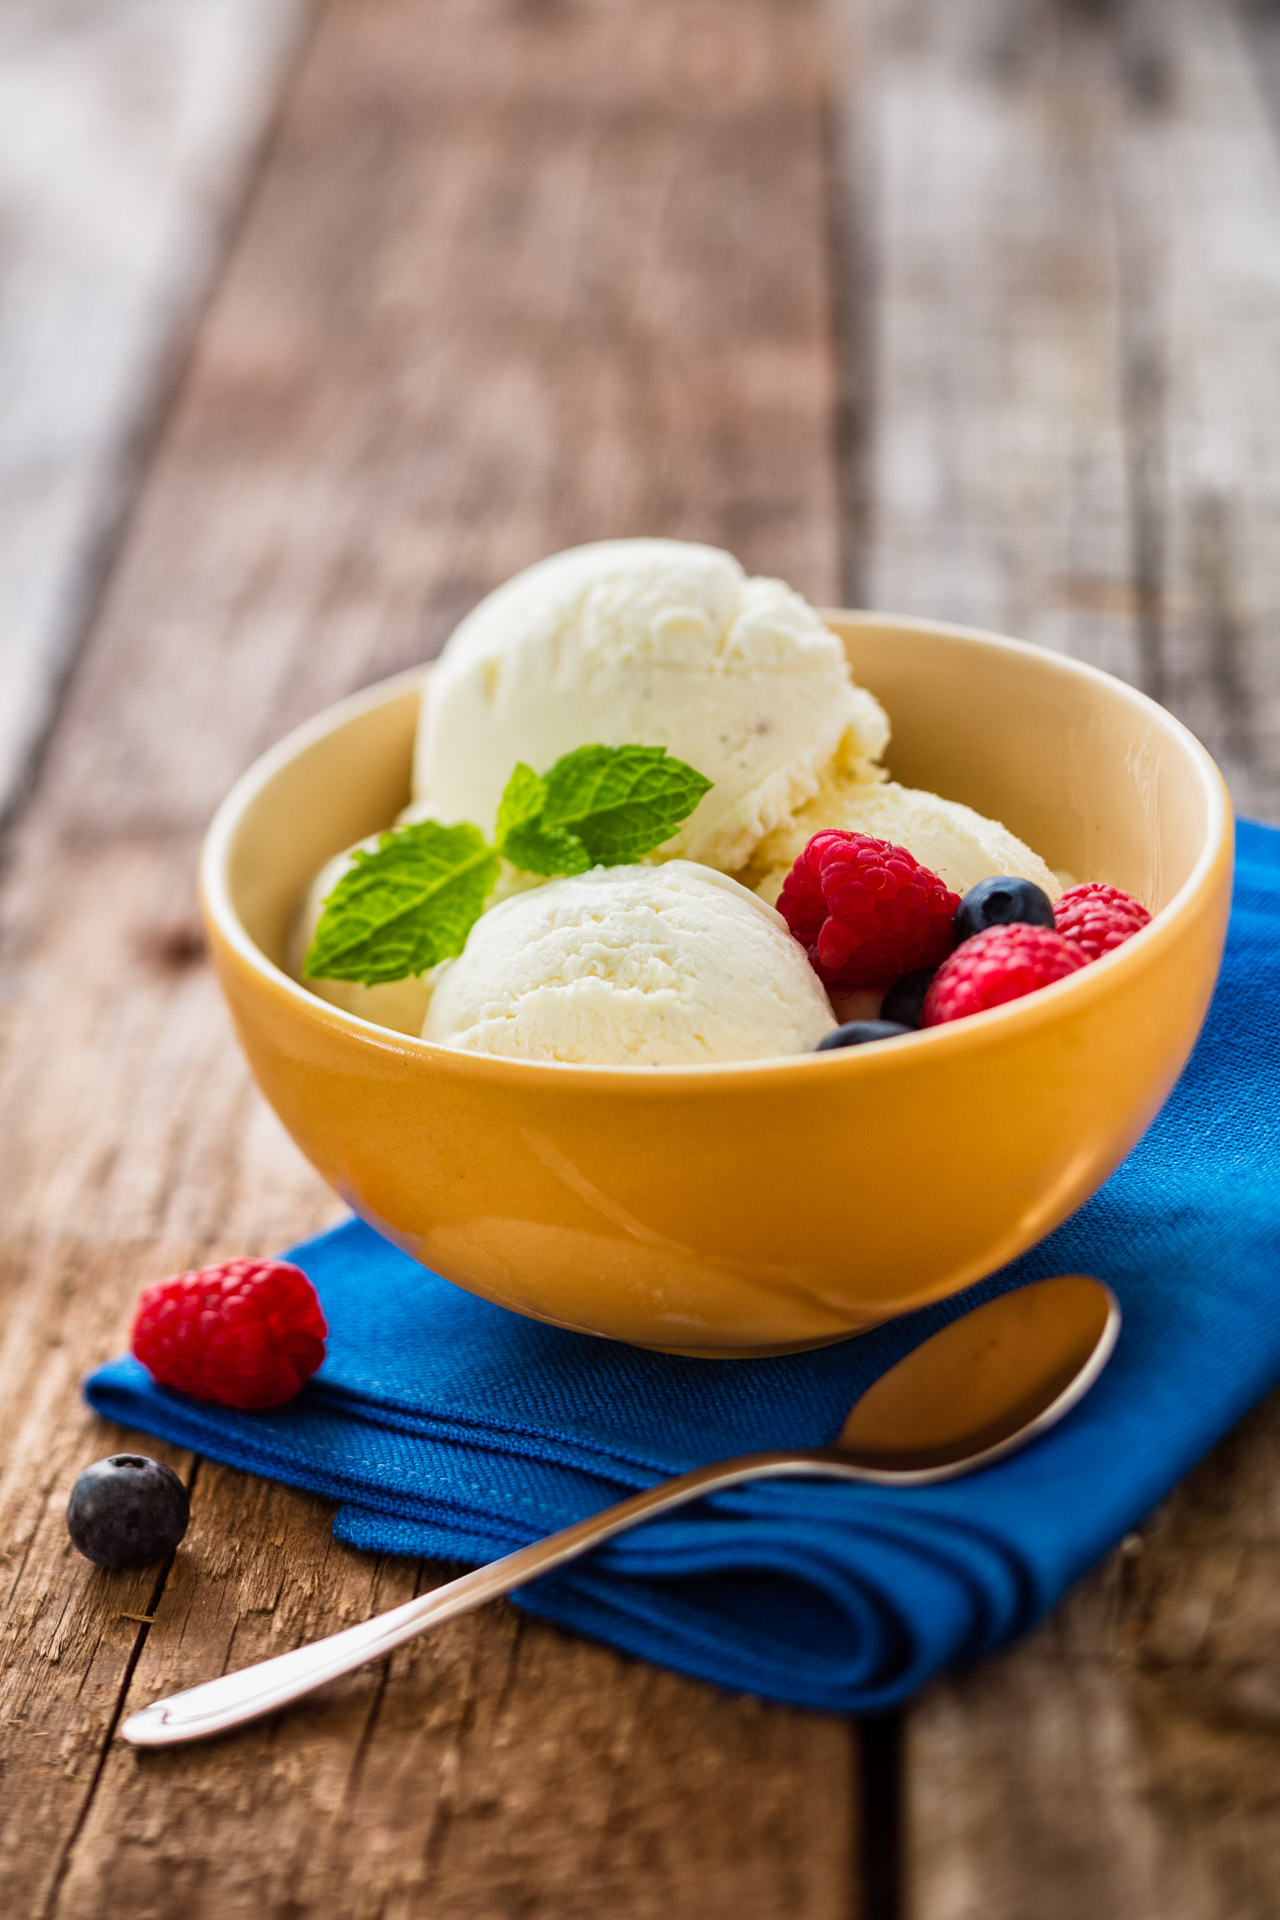 Vanilla ice recipe image with berries